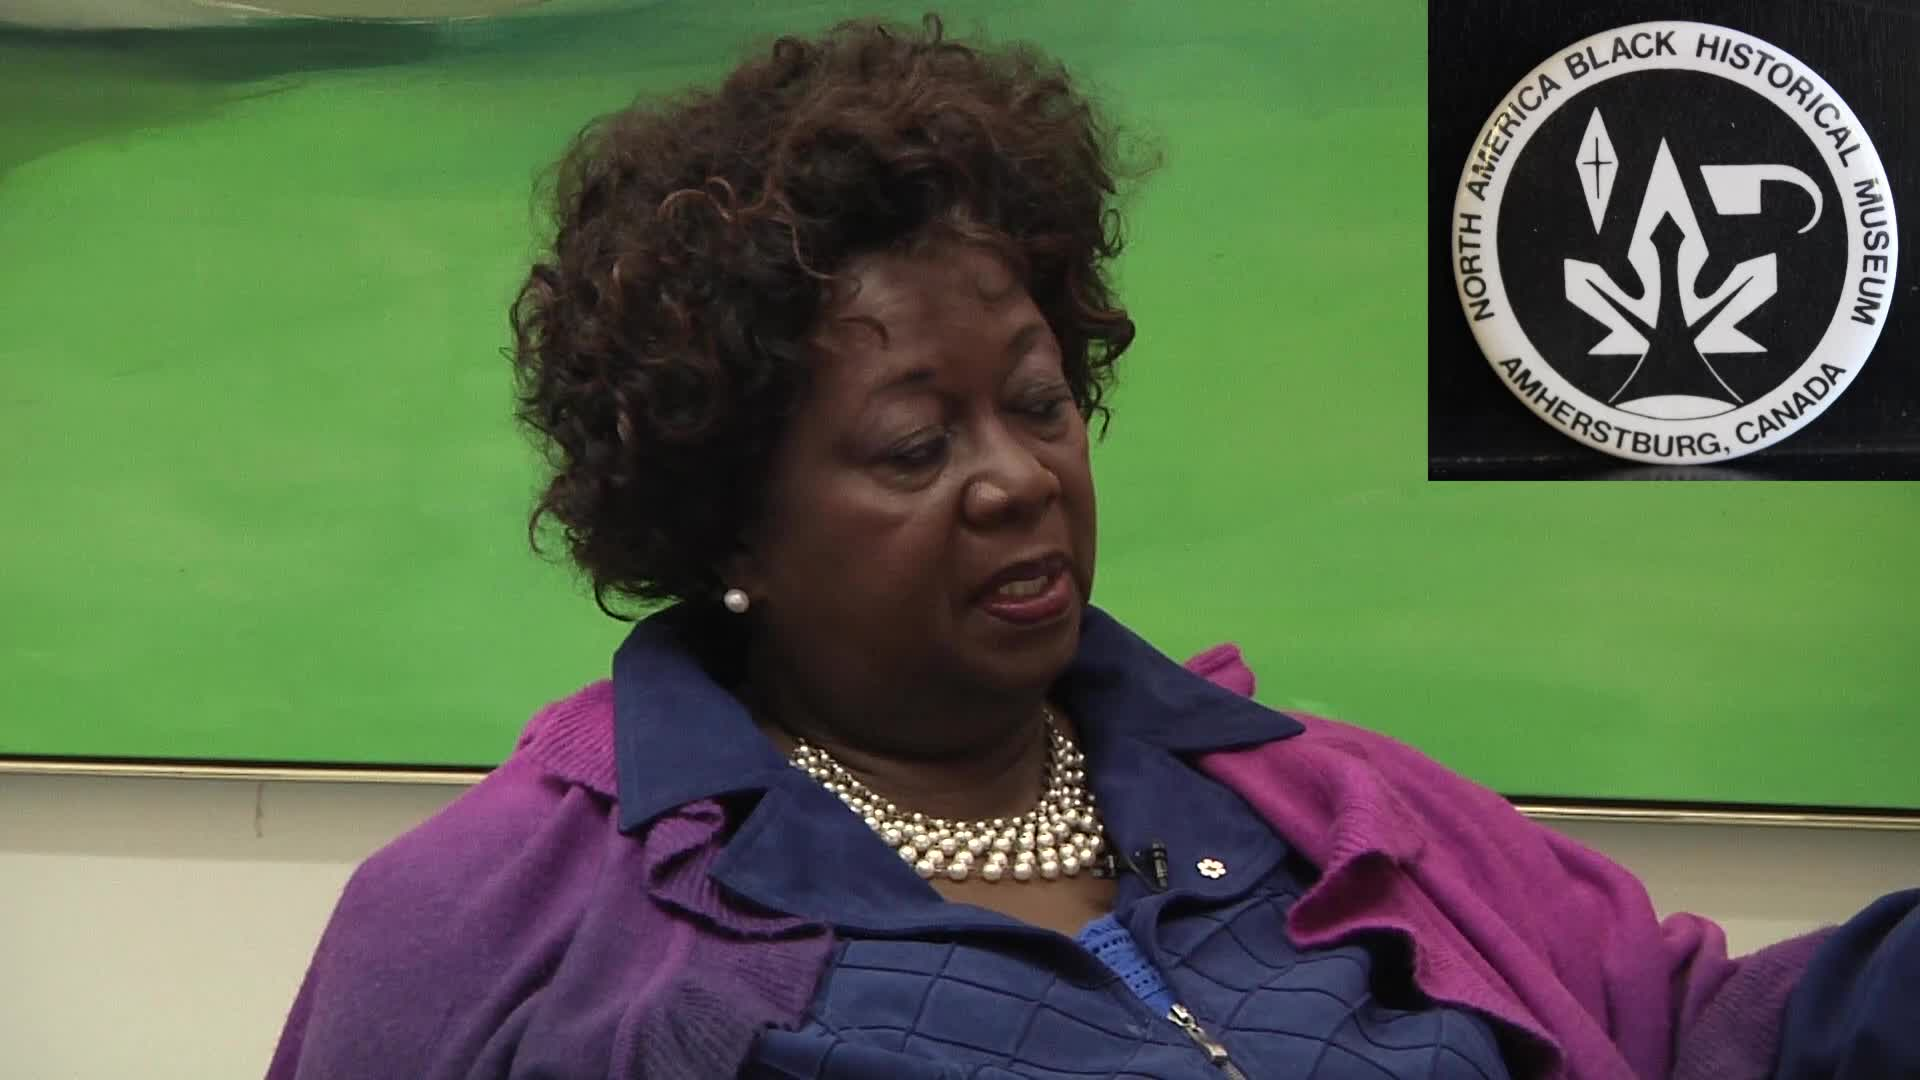 Jean Augustine interview: North American Black Historical Museum button